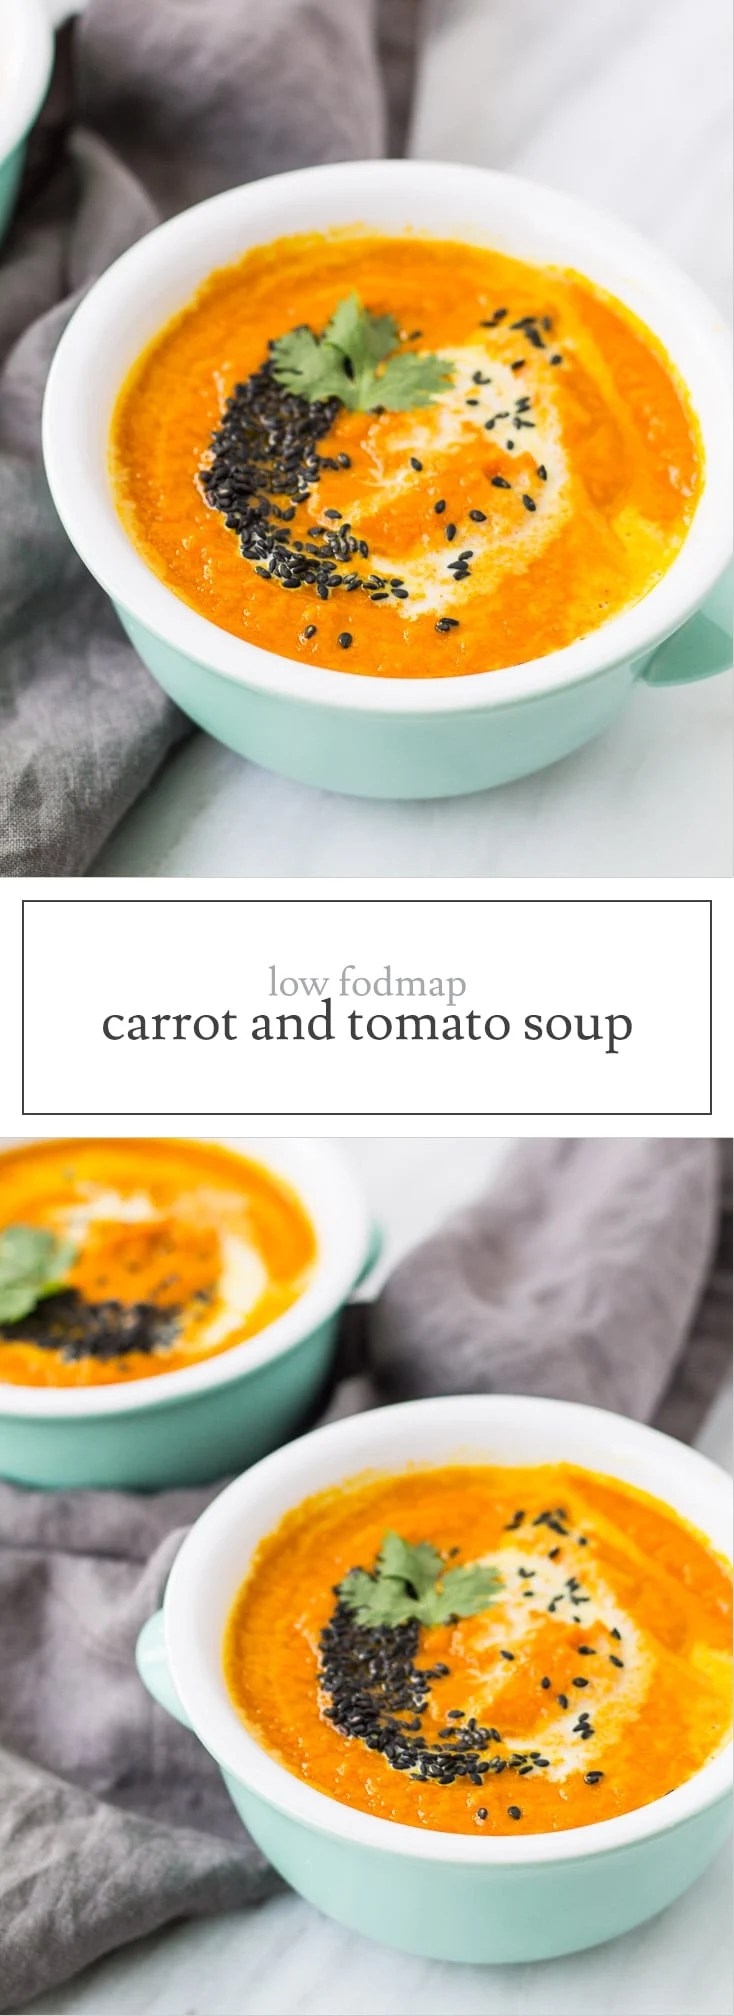 A plant-based slow cooker soup, this Low FODMAP Carrot and Tomato Soup is a yummy option to warm up during these cold weather months.